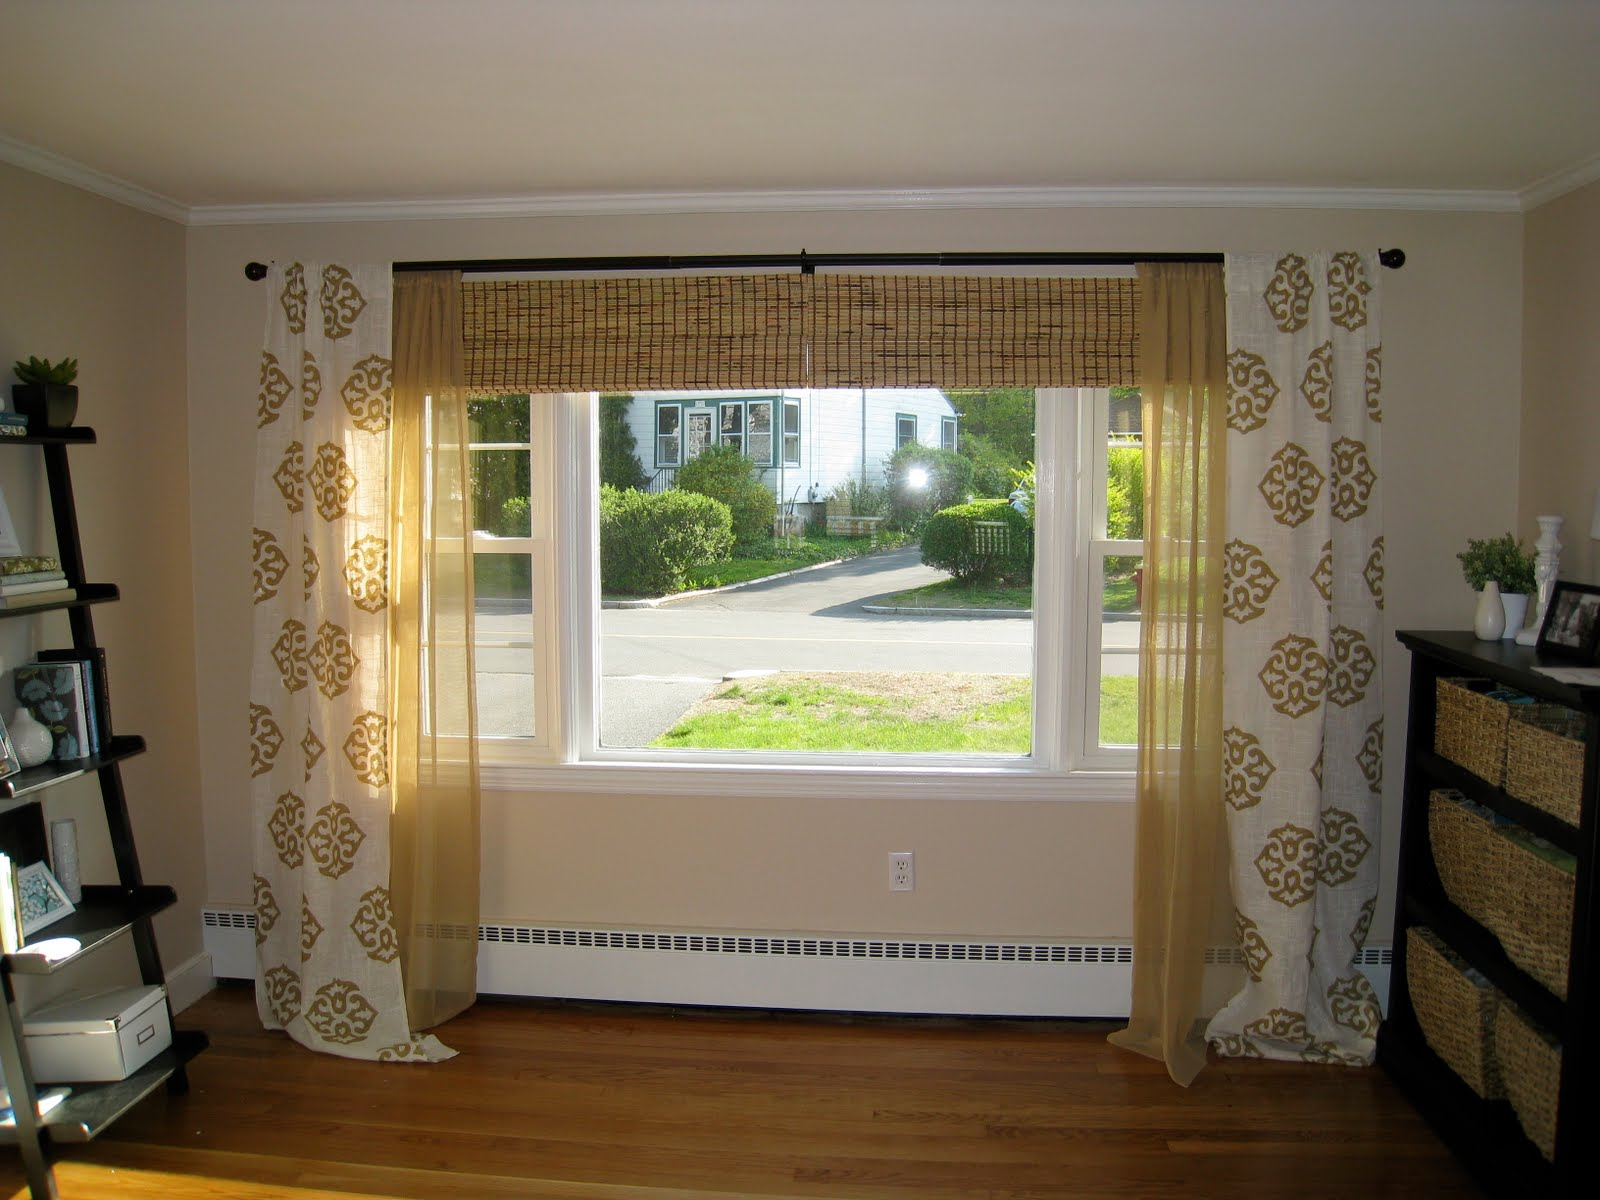 Reno 366 curtains round 3 for Curtain ideas for living room 3 windows